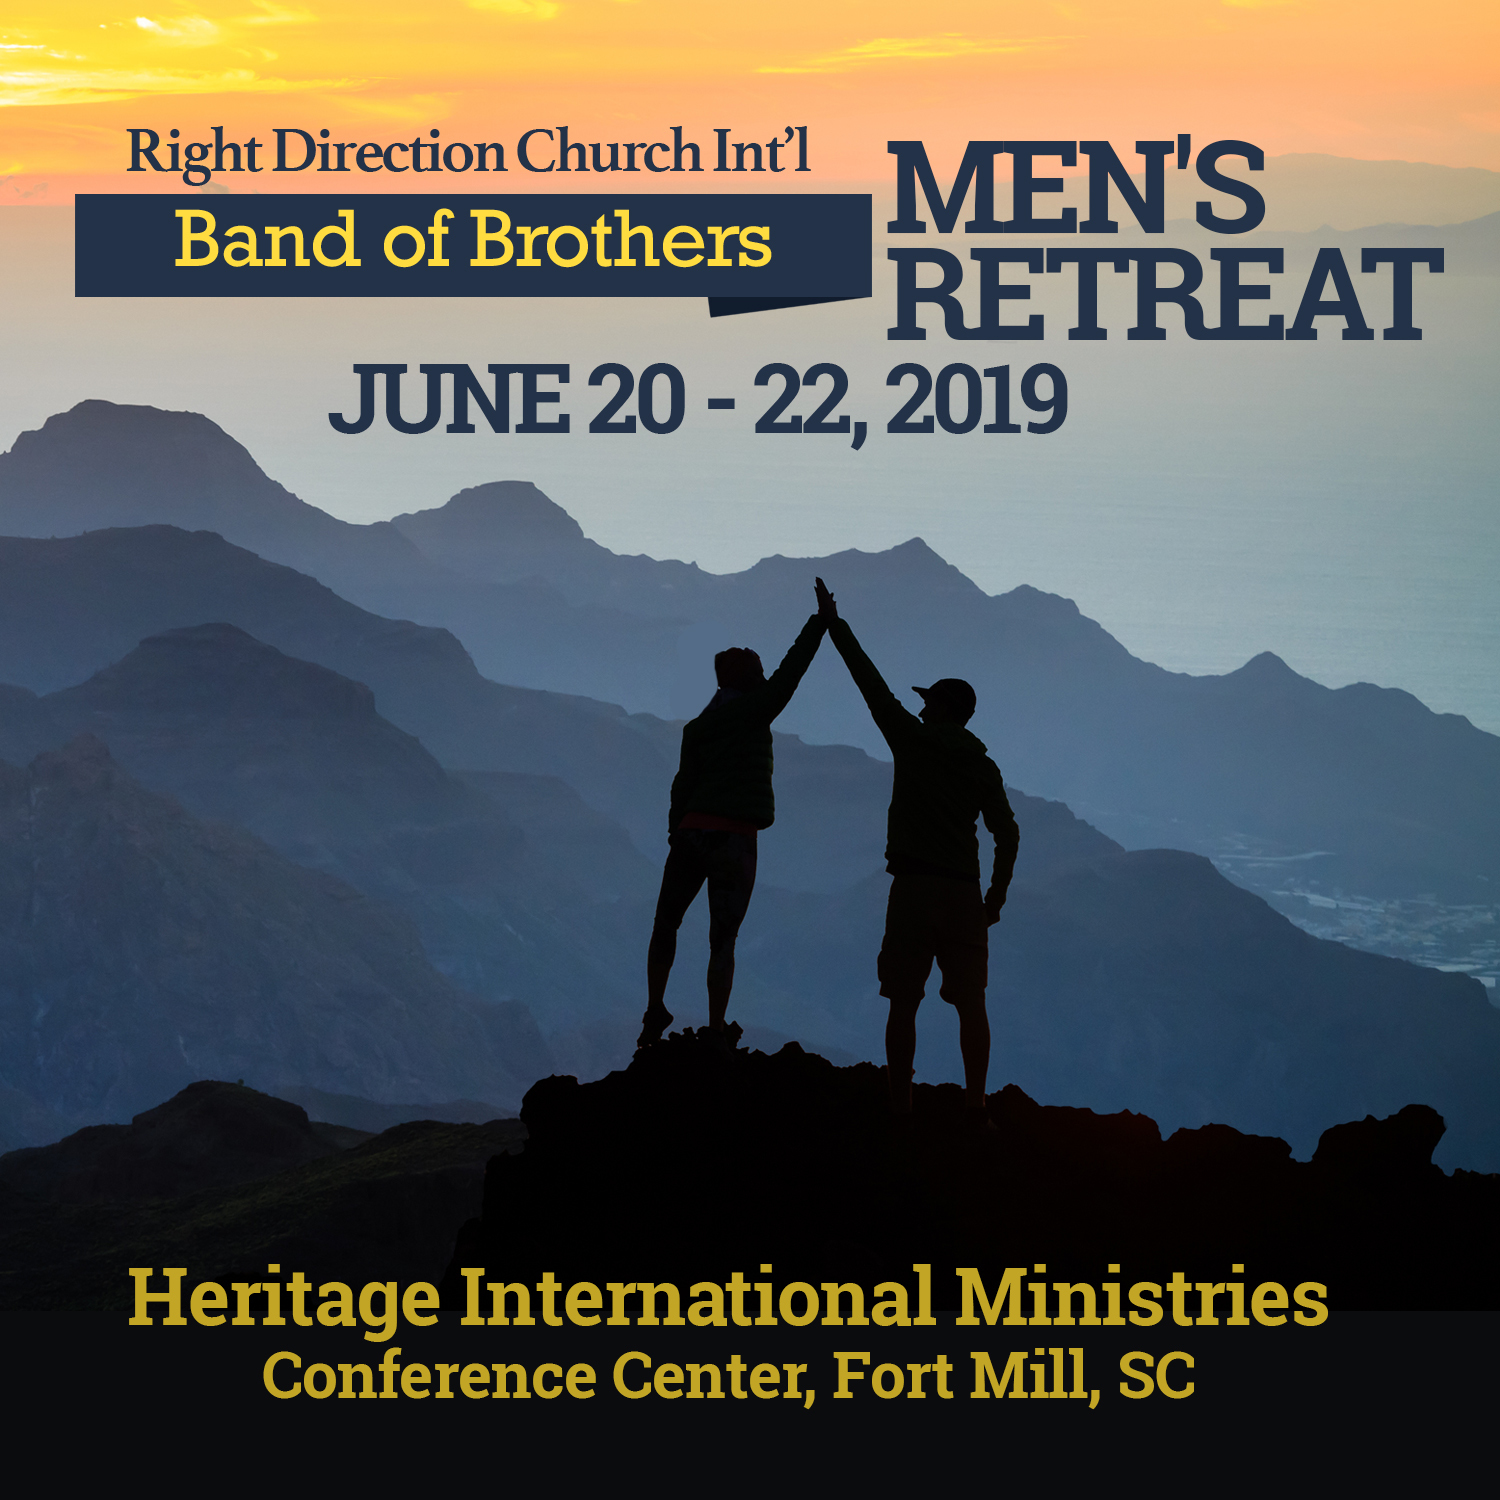 Band of Brothers Men's Retreat - Package A (Deposit) RDCI0040a